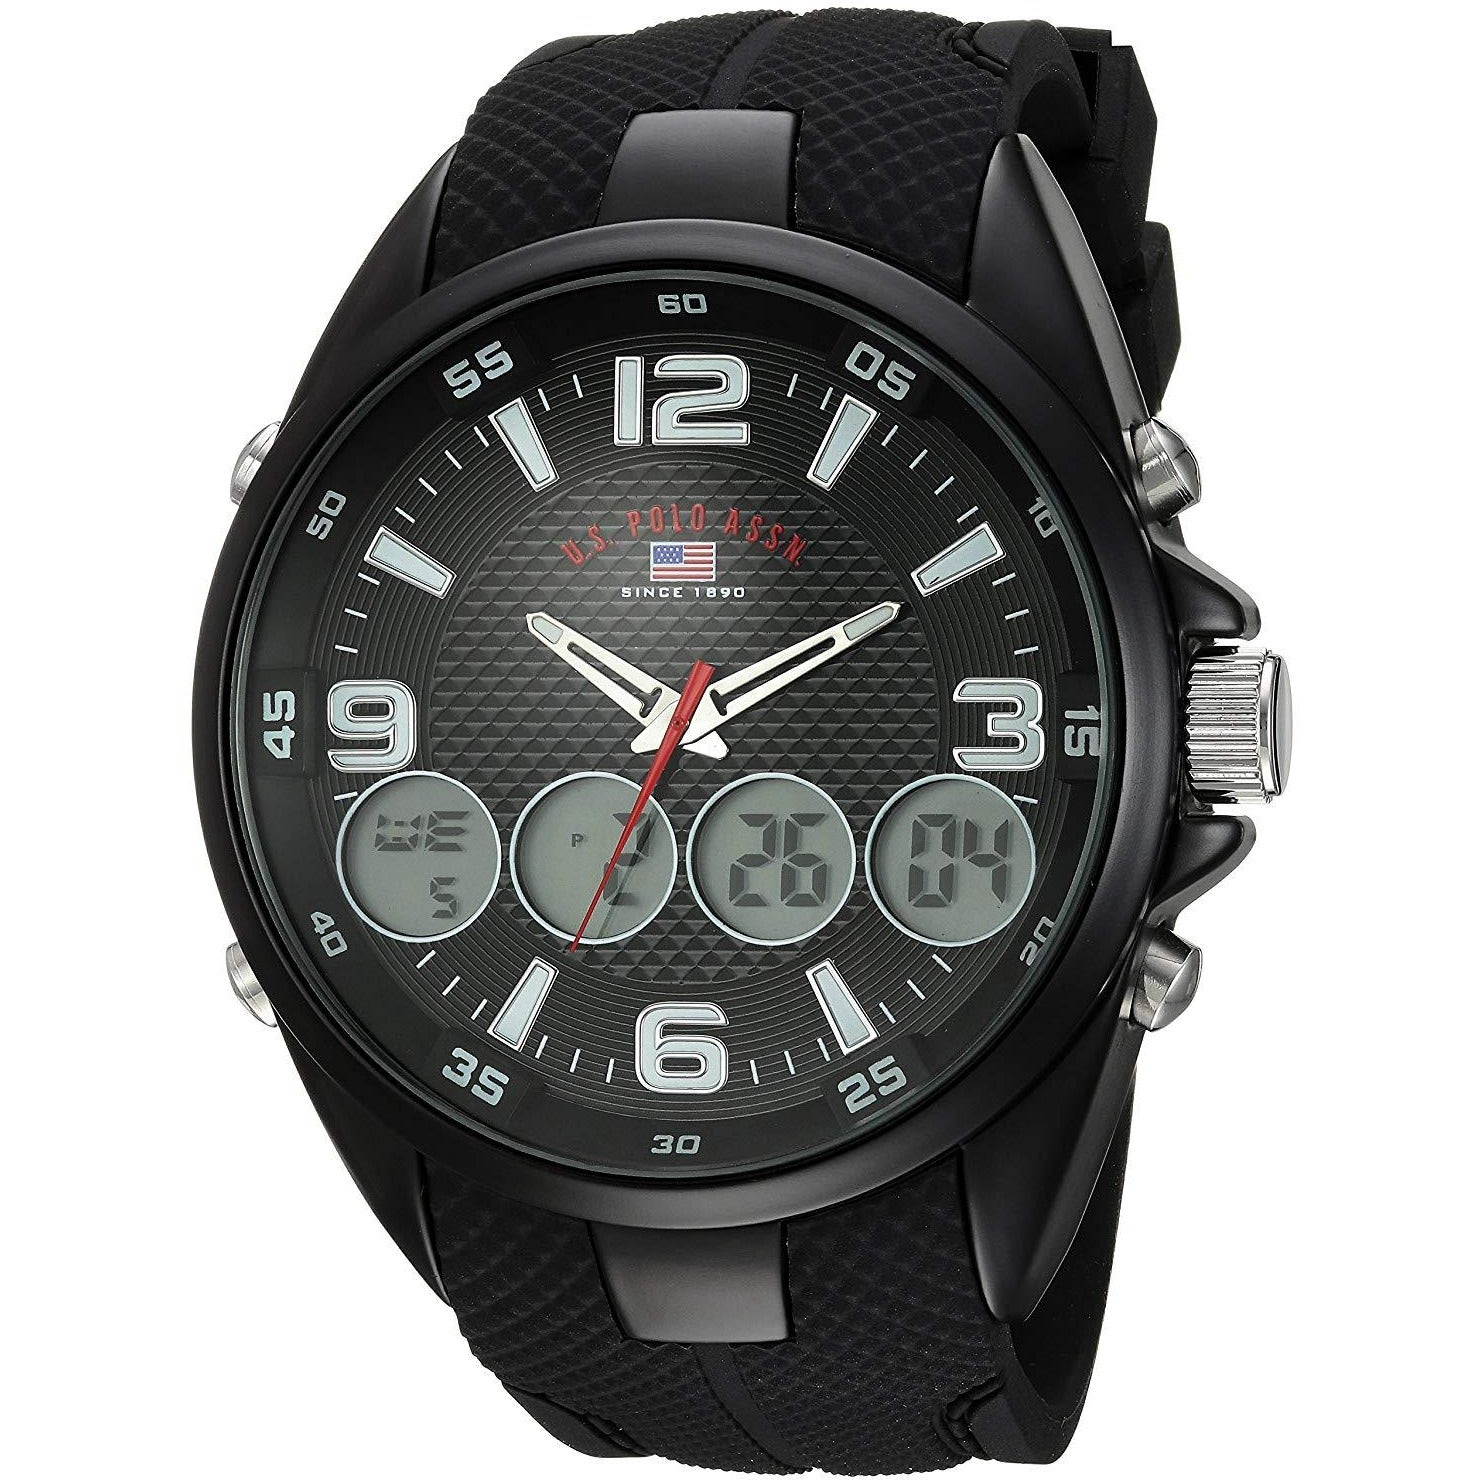 U.S. Polo Assn. Men's Quartz Metal and Rubber Casual Watch Model US9596